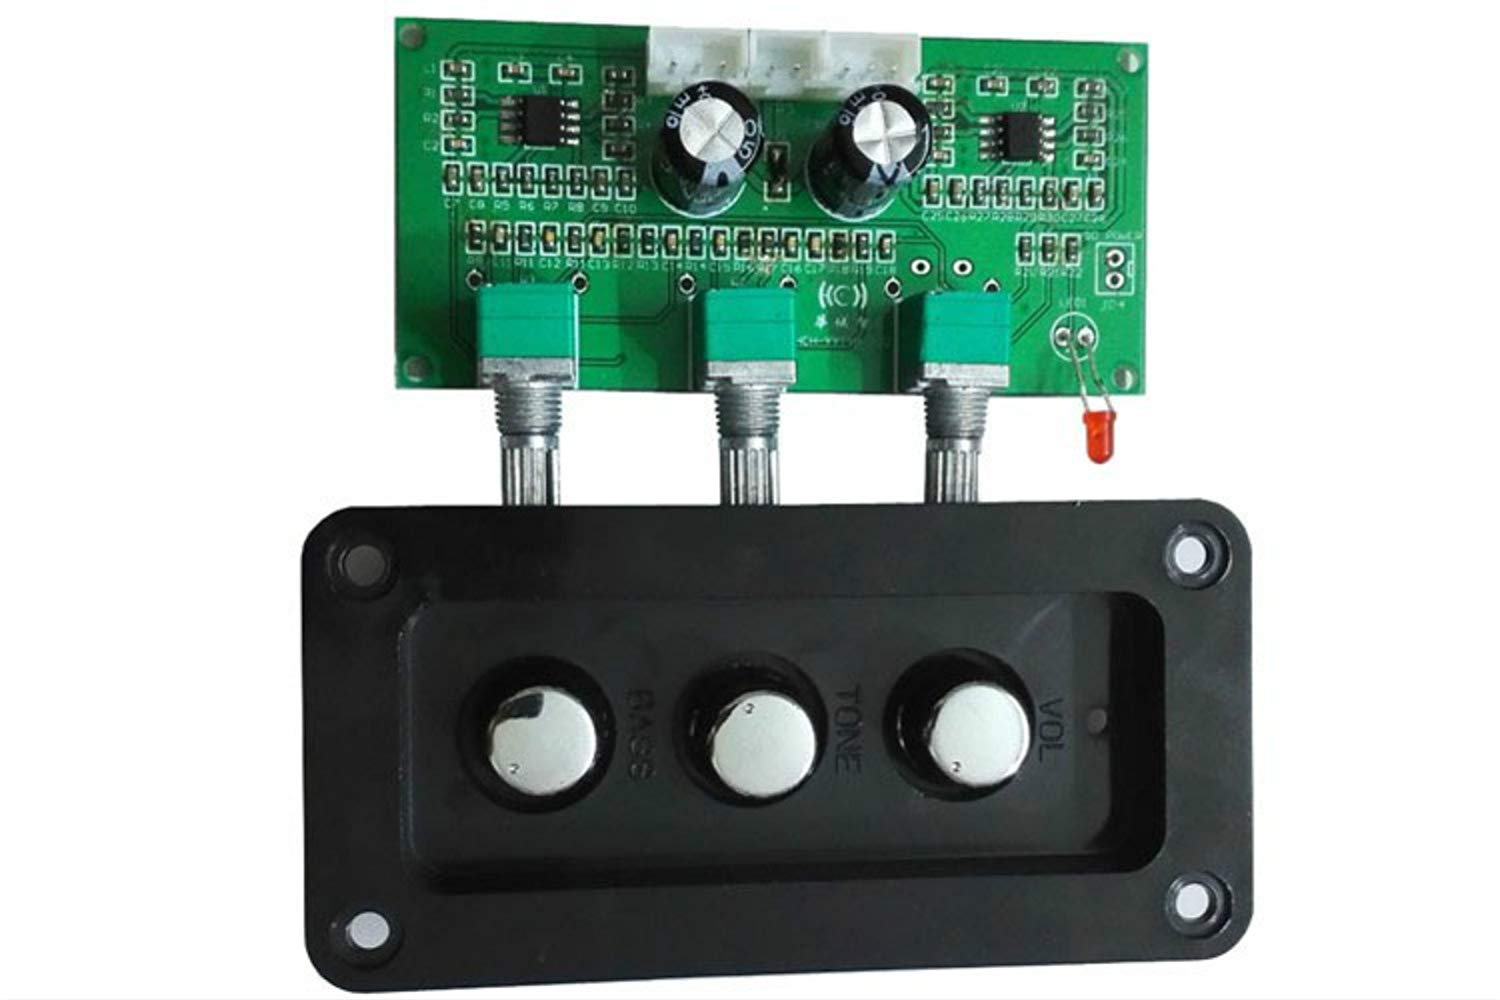 Lowpass Filter Subwoofer Frequency Circuit Board Ne5532 Opamp Chip Cheap Find Deals On Line At Alibabacom Get Quotations Aoshike Digital Amplifier Actie Loudsperker Volume Control With Panel Hiif Lossless Audio Treble Bass Adjustment